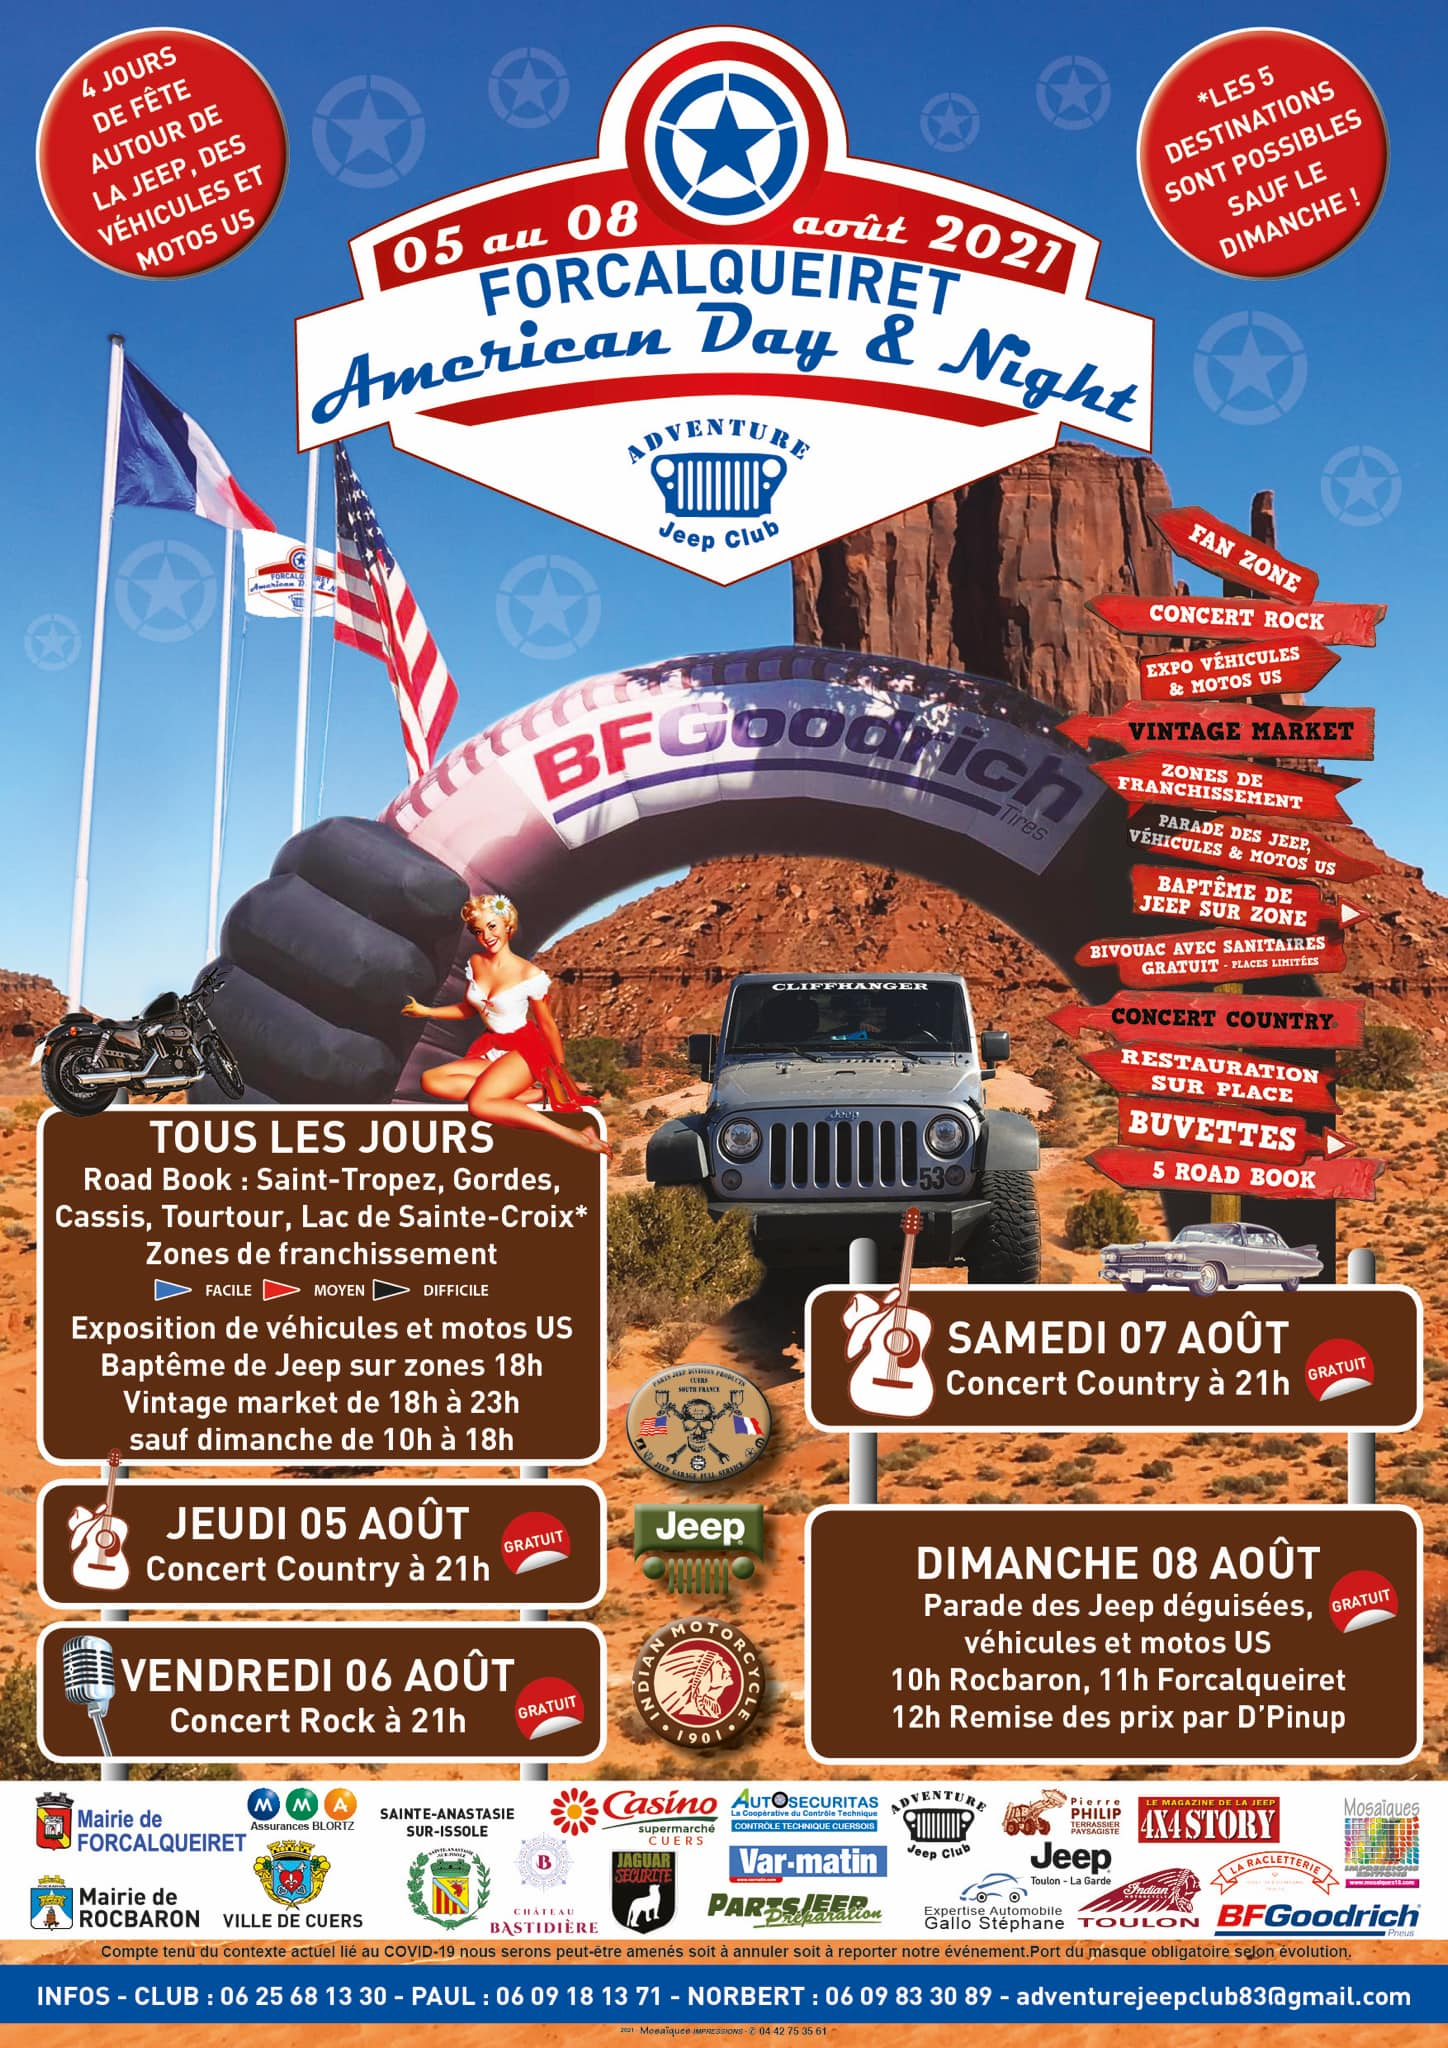 American Day & Night 2021 : les dates